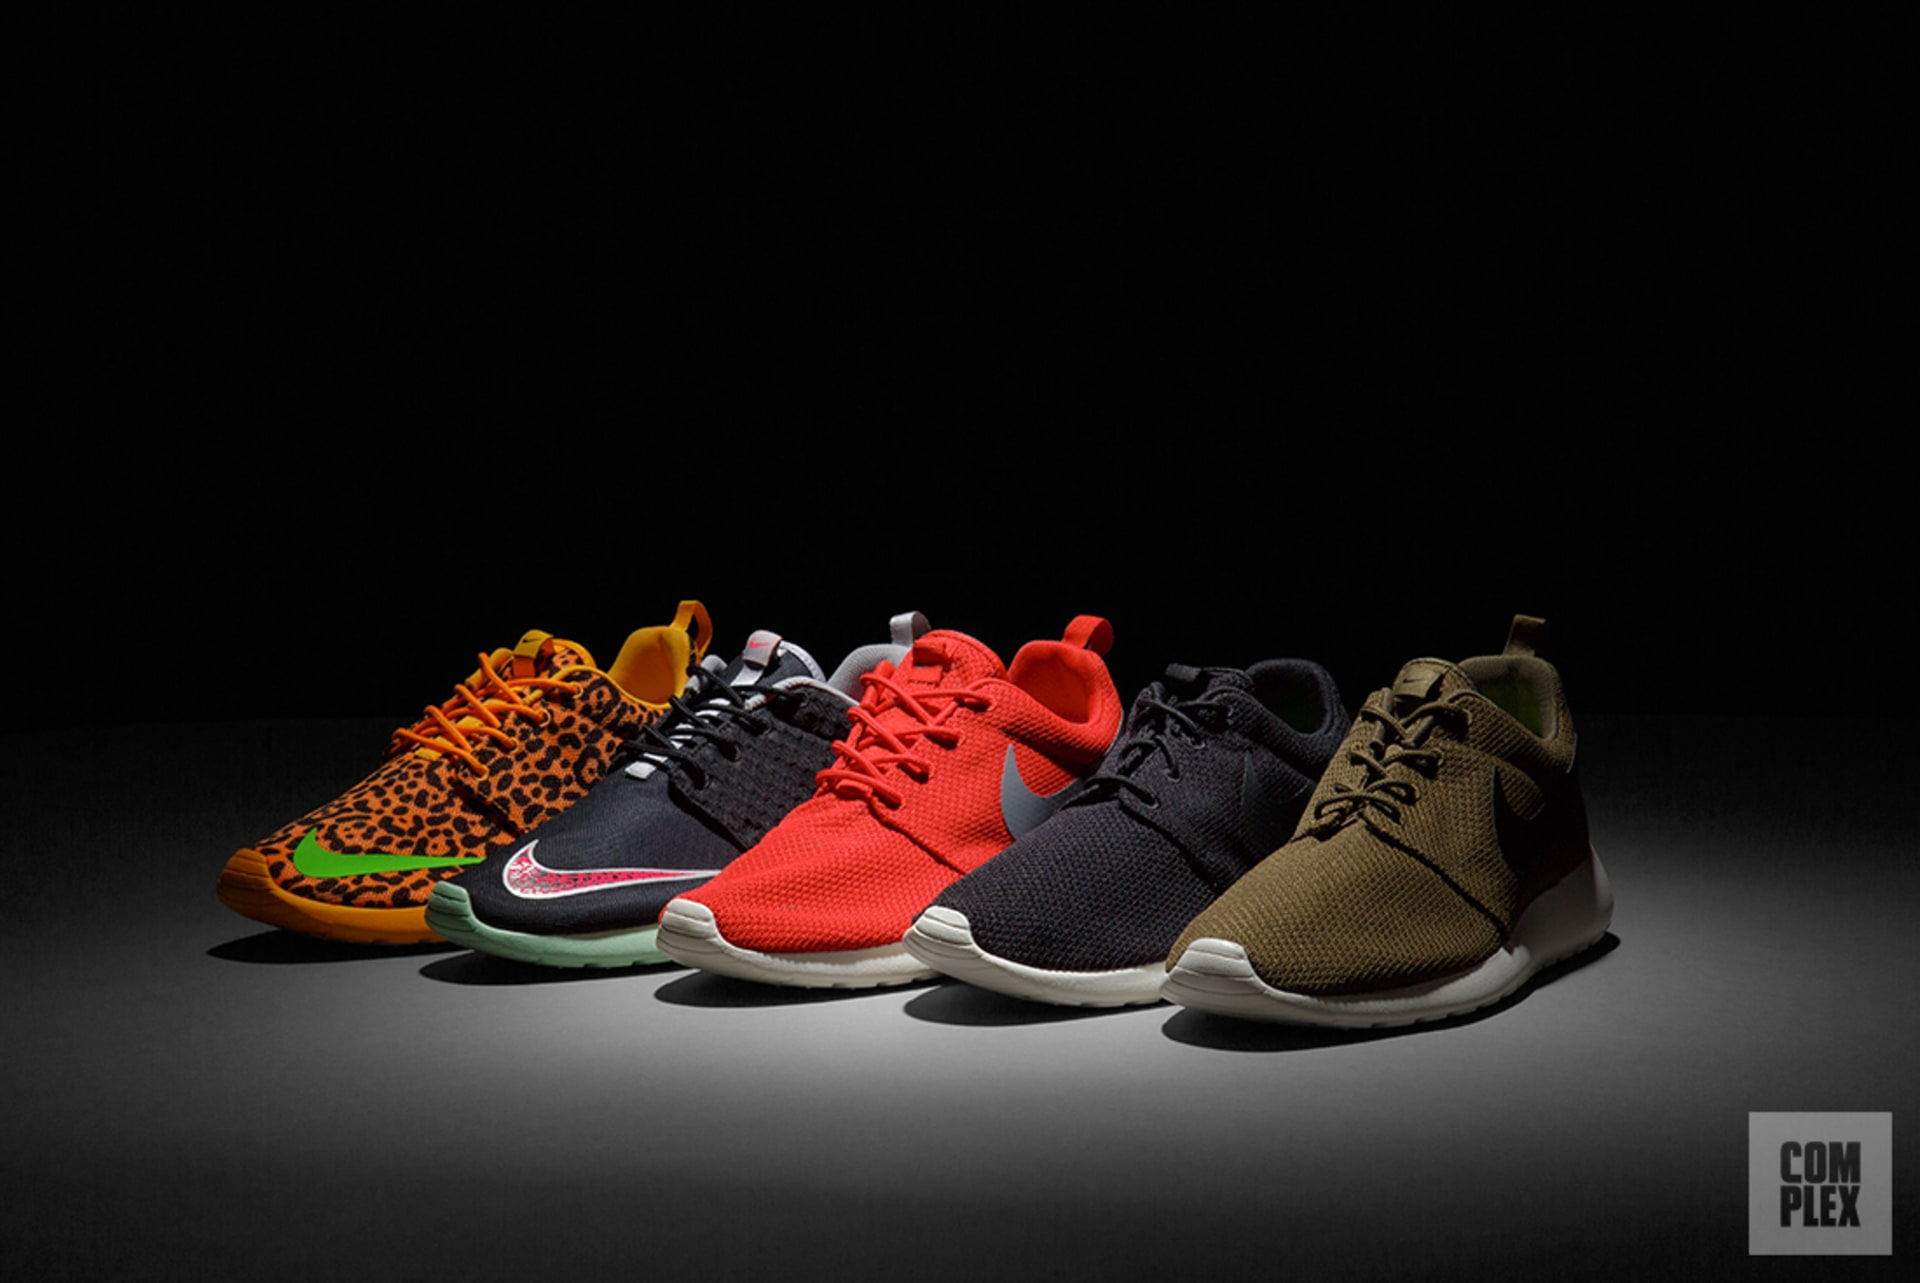 1ed8bb743f2d8 Roshe Run. Image via Complex Original. All sneakers courtesy of Stadium  Goods. The Nike ...